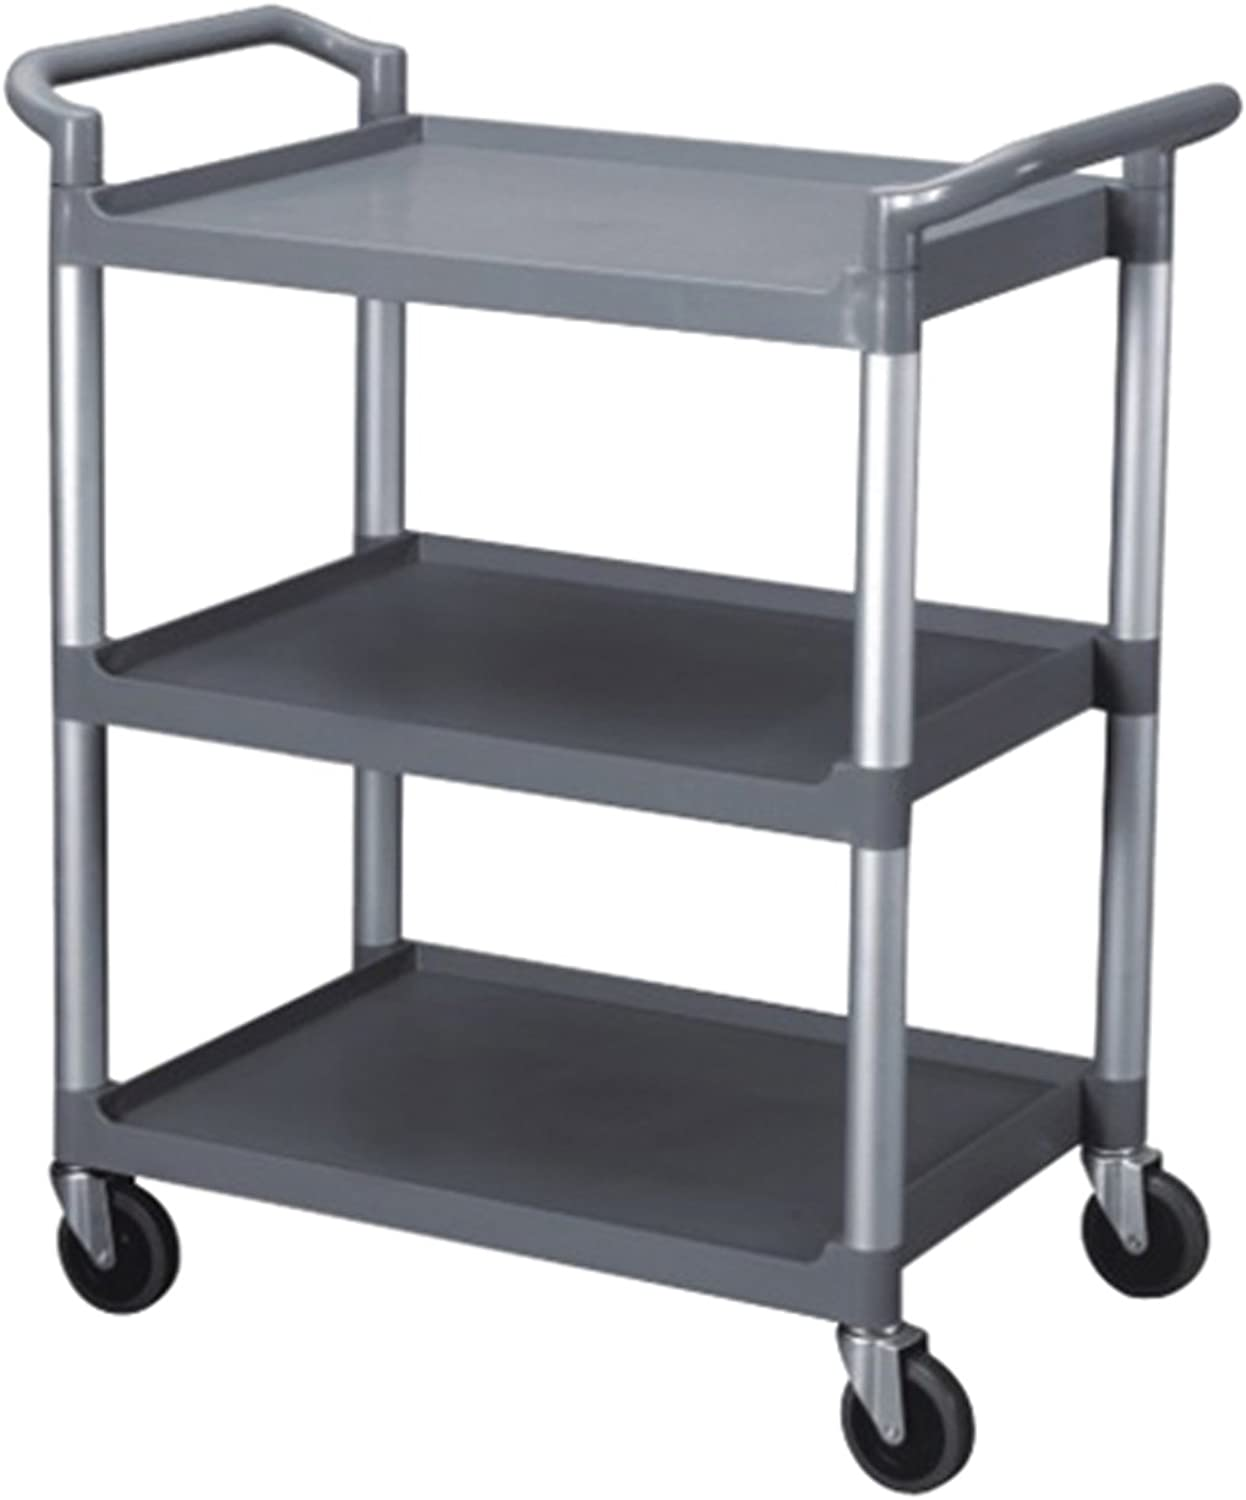 Excellante 40-1 2-Inch by 19-3 4-Inch by 37-7 8-Inch, 3-Tier Bus Cart, Grey